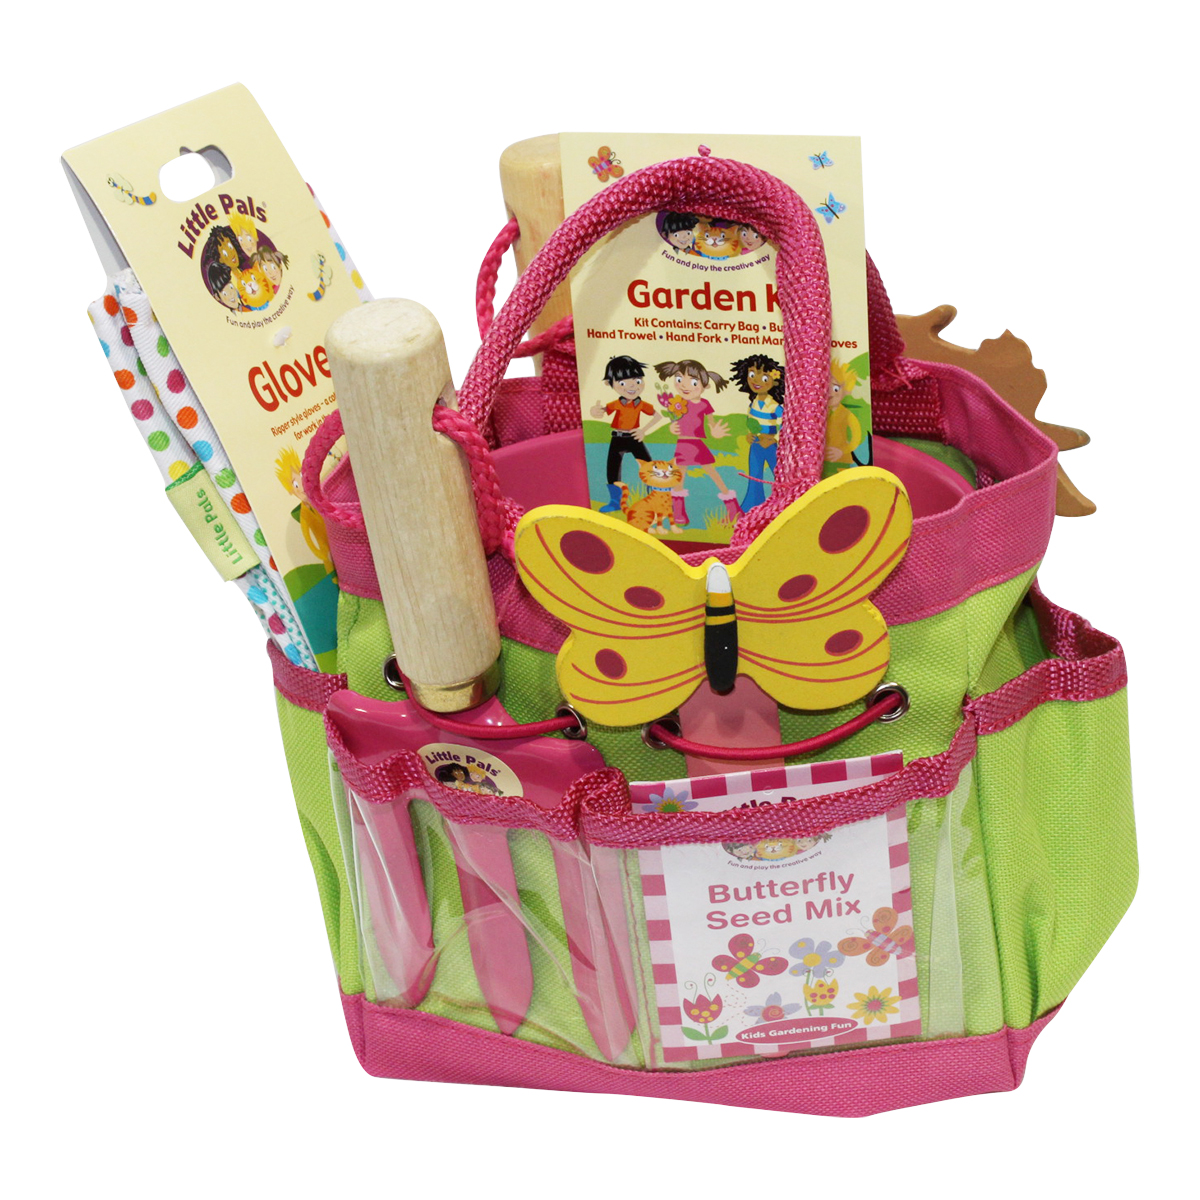 childrens gardening set pink